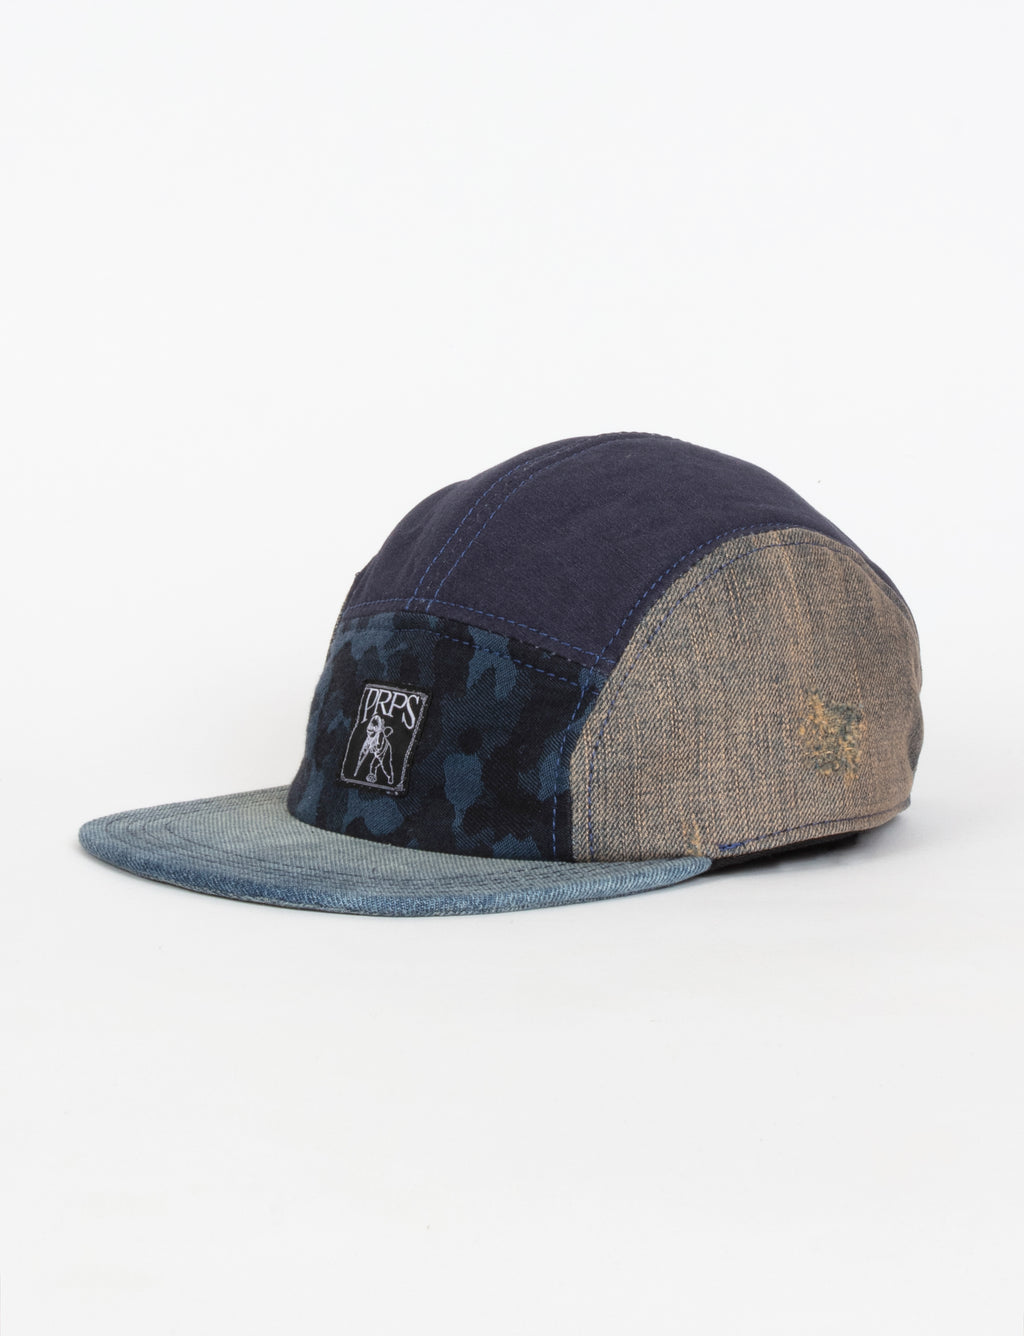 Prps - Japanese Camo/Orange OD Hat - Hat - Prps